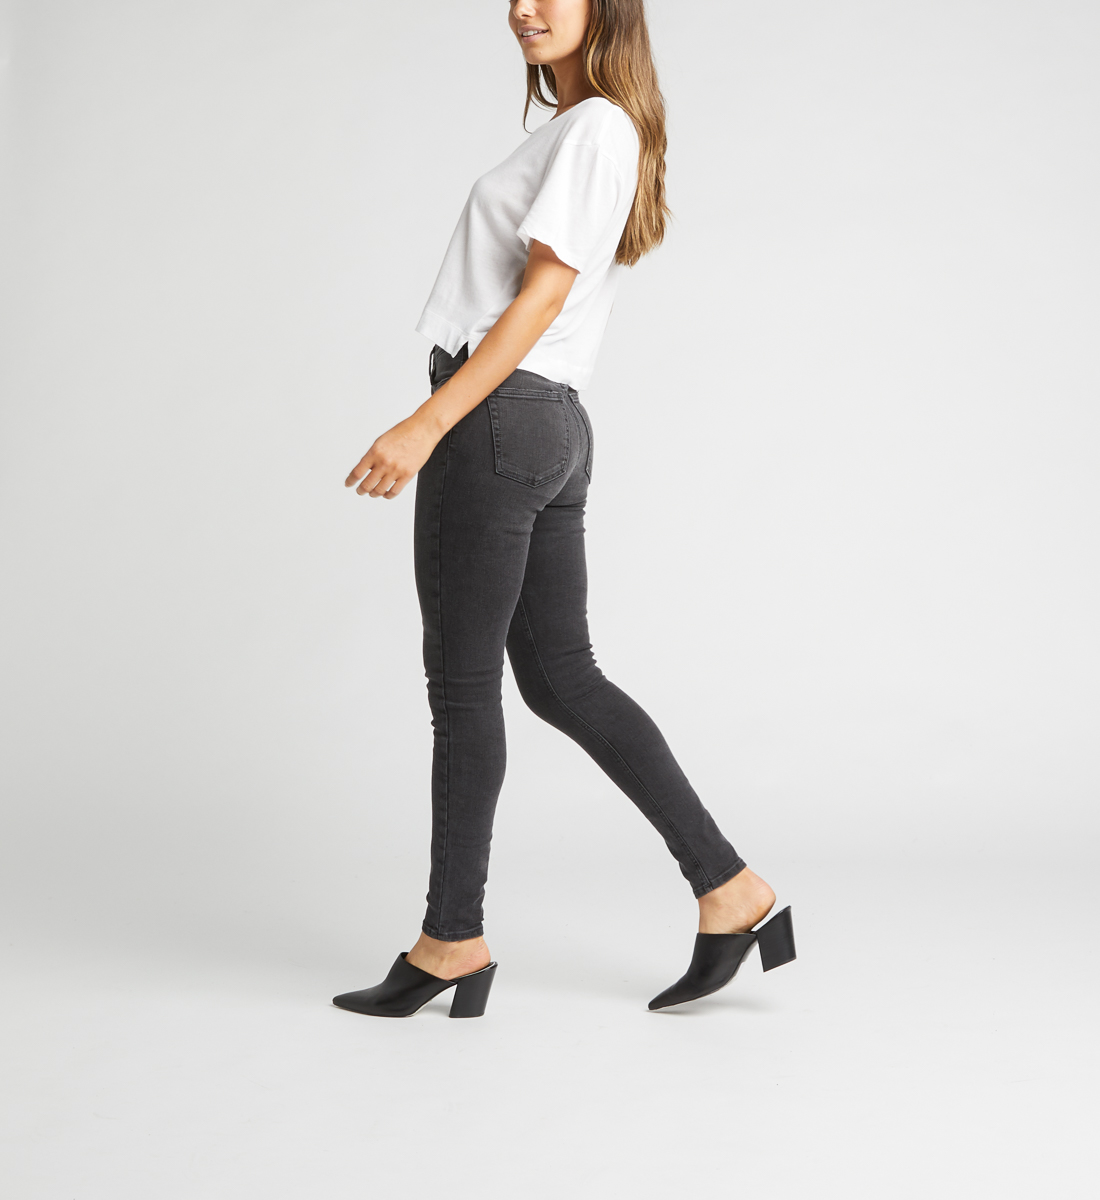 High Note High Rise Skinny Jeans Side